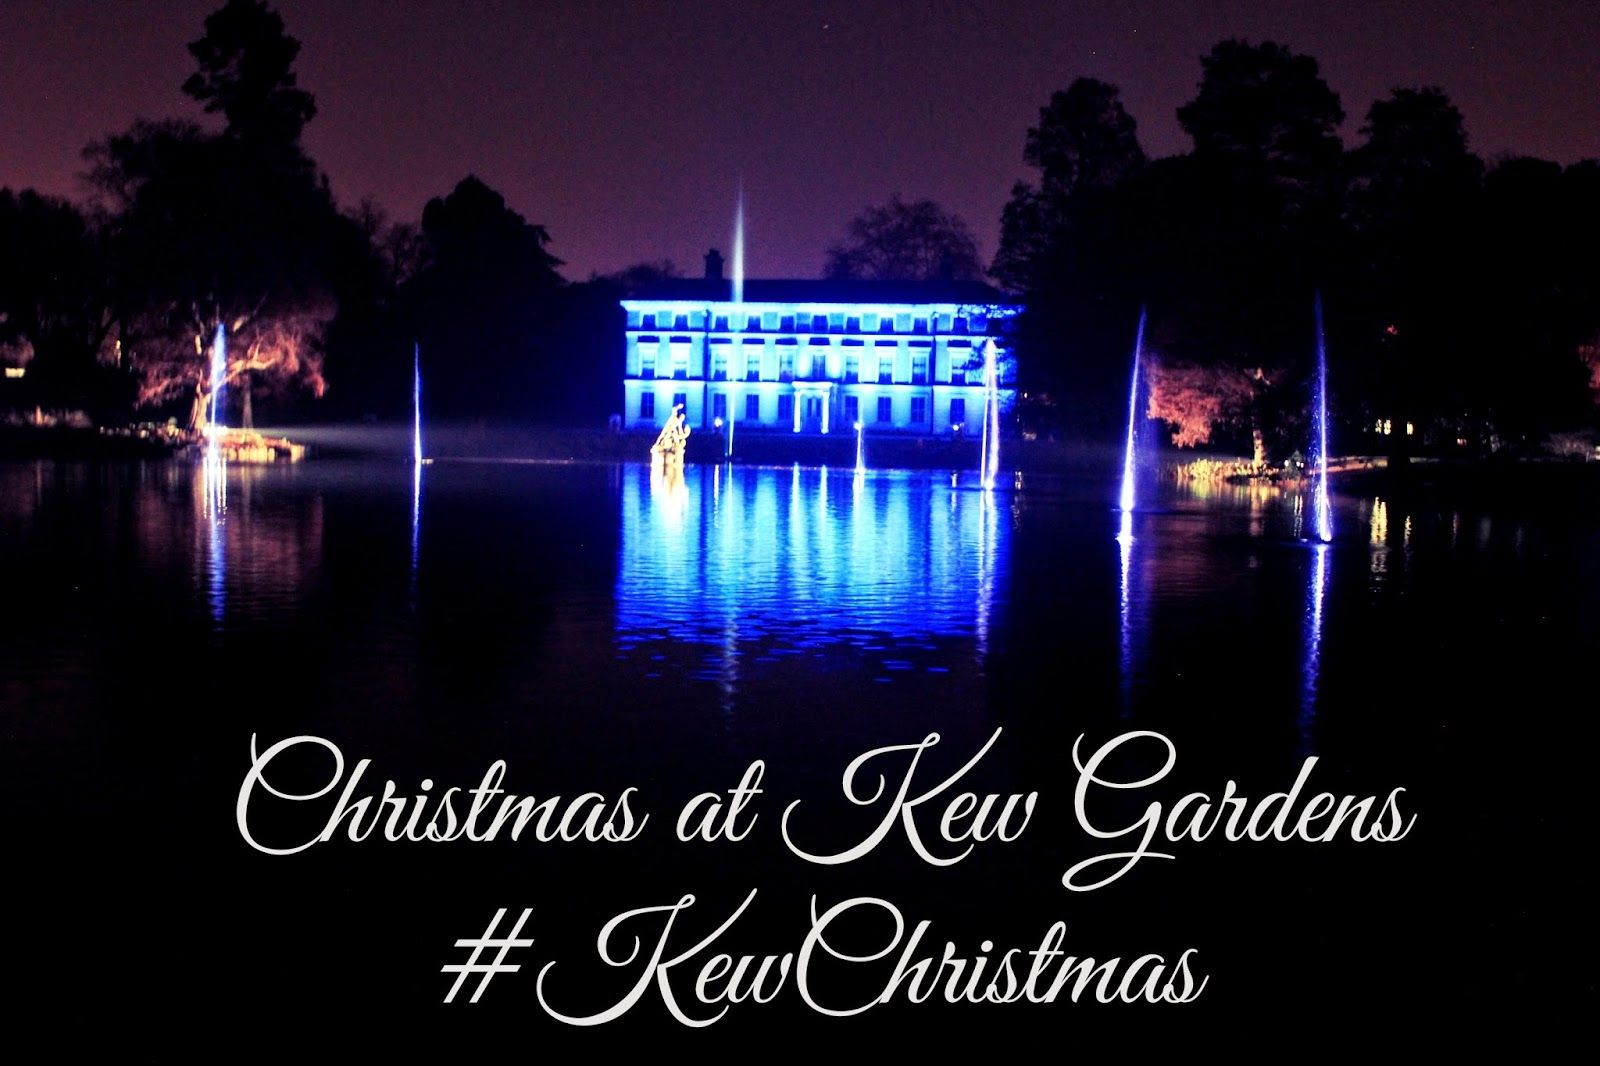 christmas at kew gardens kewchristmas london here i come